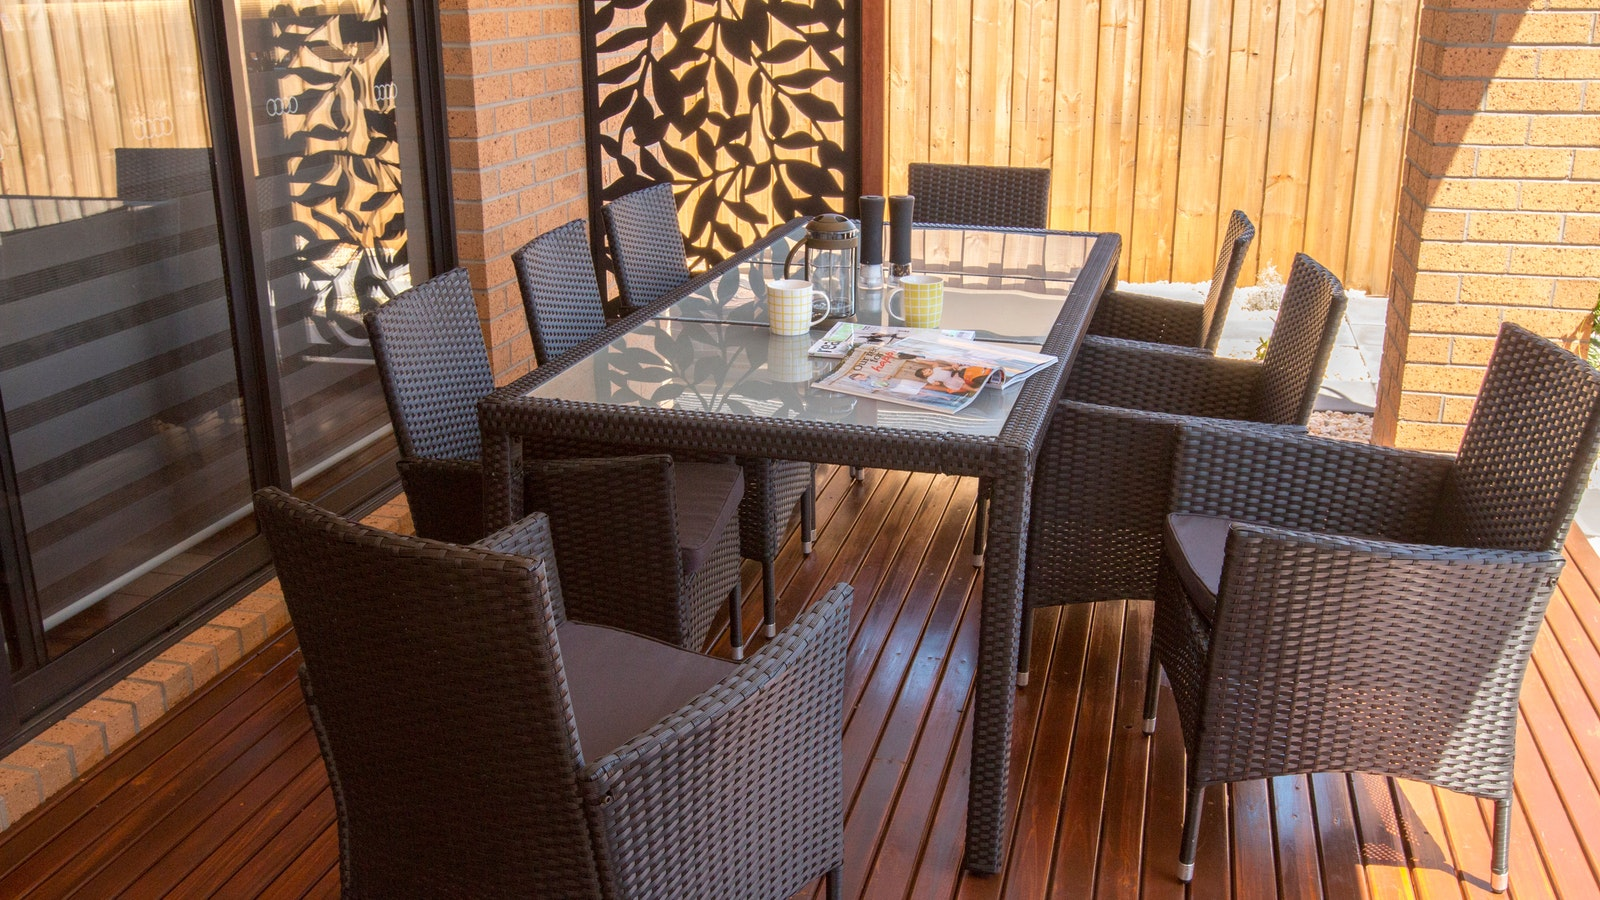 BBQ area with wicker Setting and lounge chairs